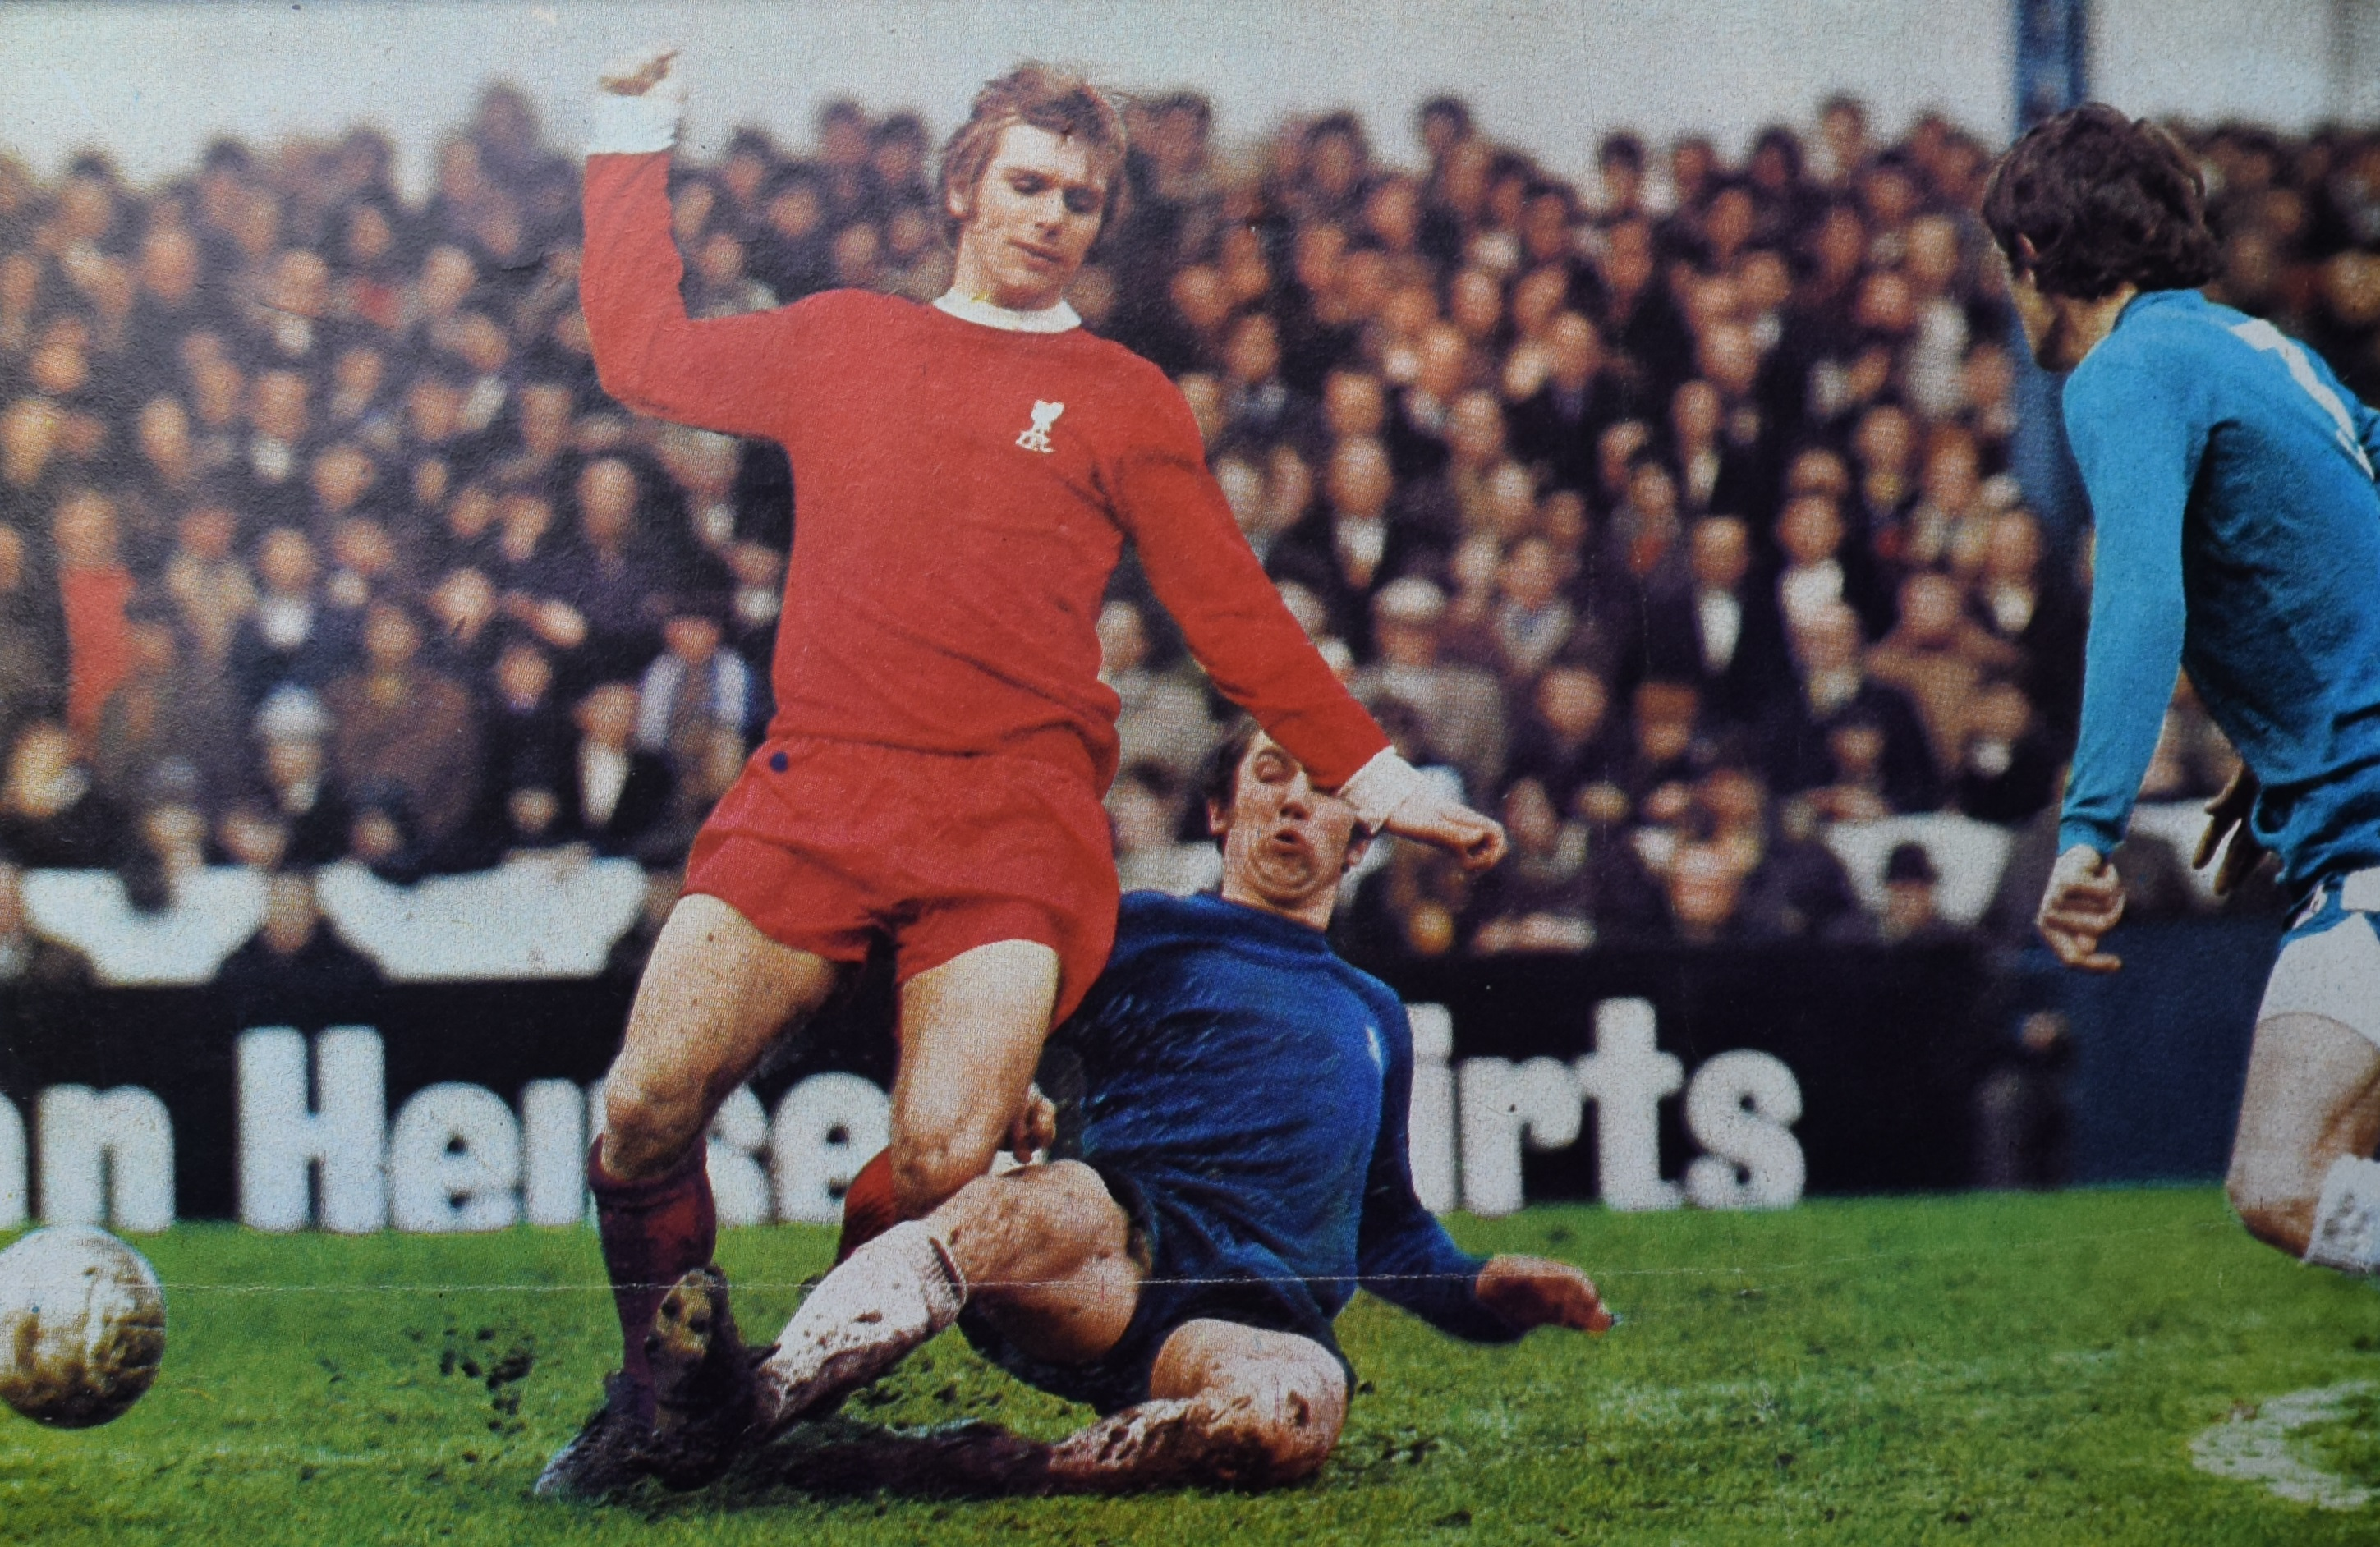 Evans tackled - action image - 12 April 1971